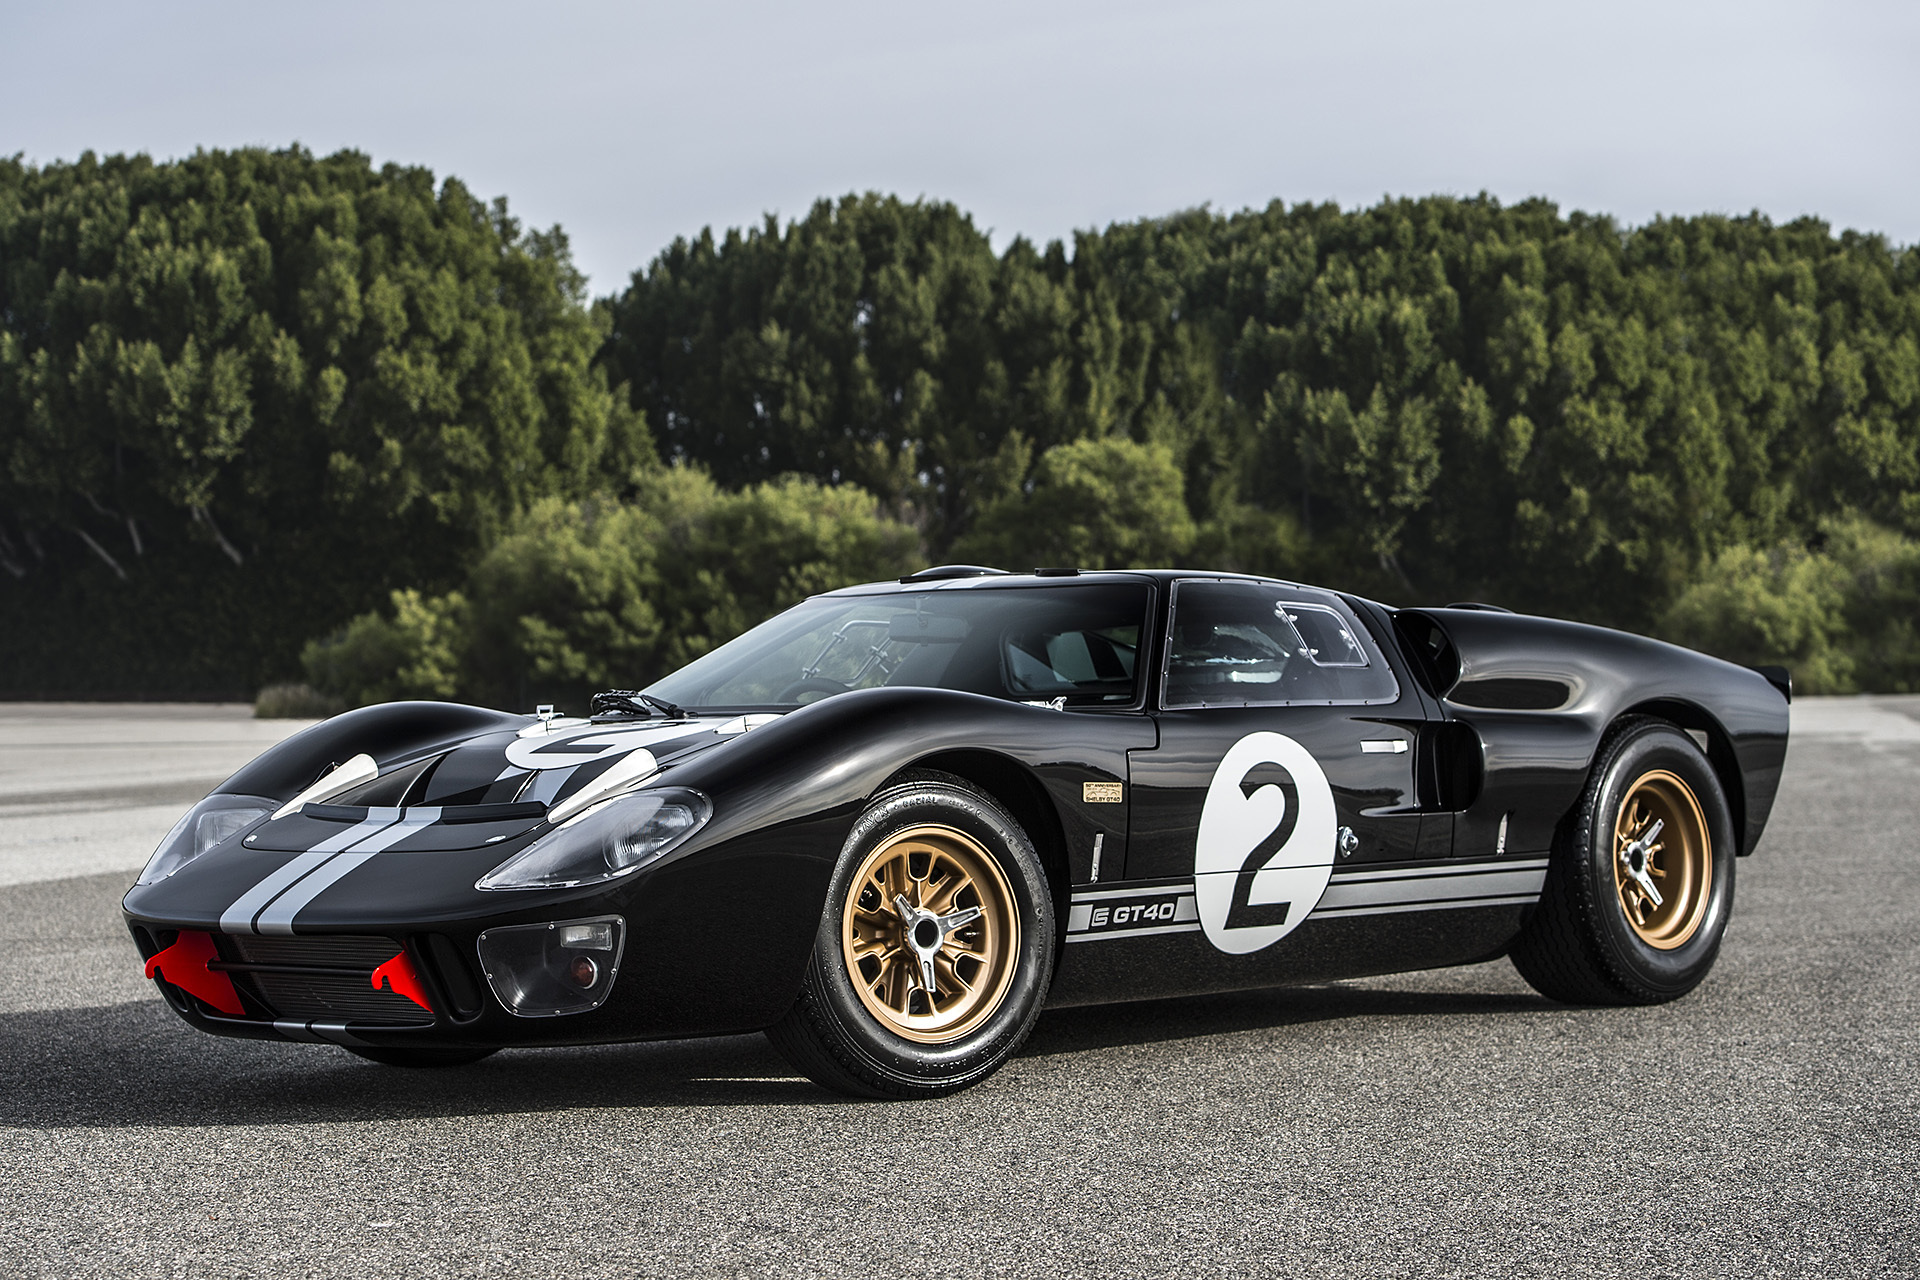 Shelby Superformance Unveil 50th Anniversary Gt40 Coolfords 1960s Ford Sports Cars The Leading Manufacturer Of Era Continuation Has Collaborated With American Inc To Release 20 Limited Edition